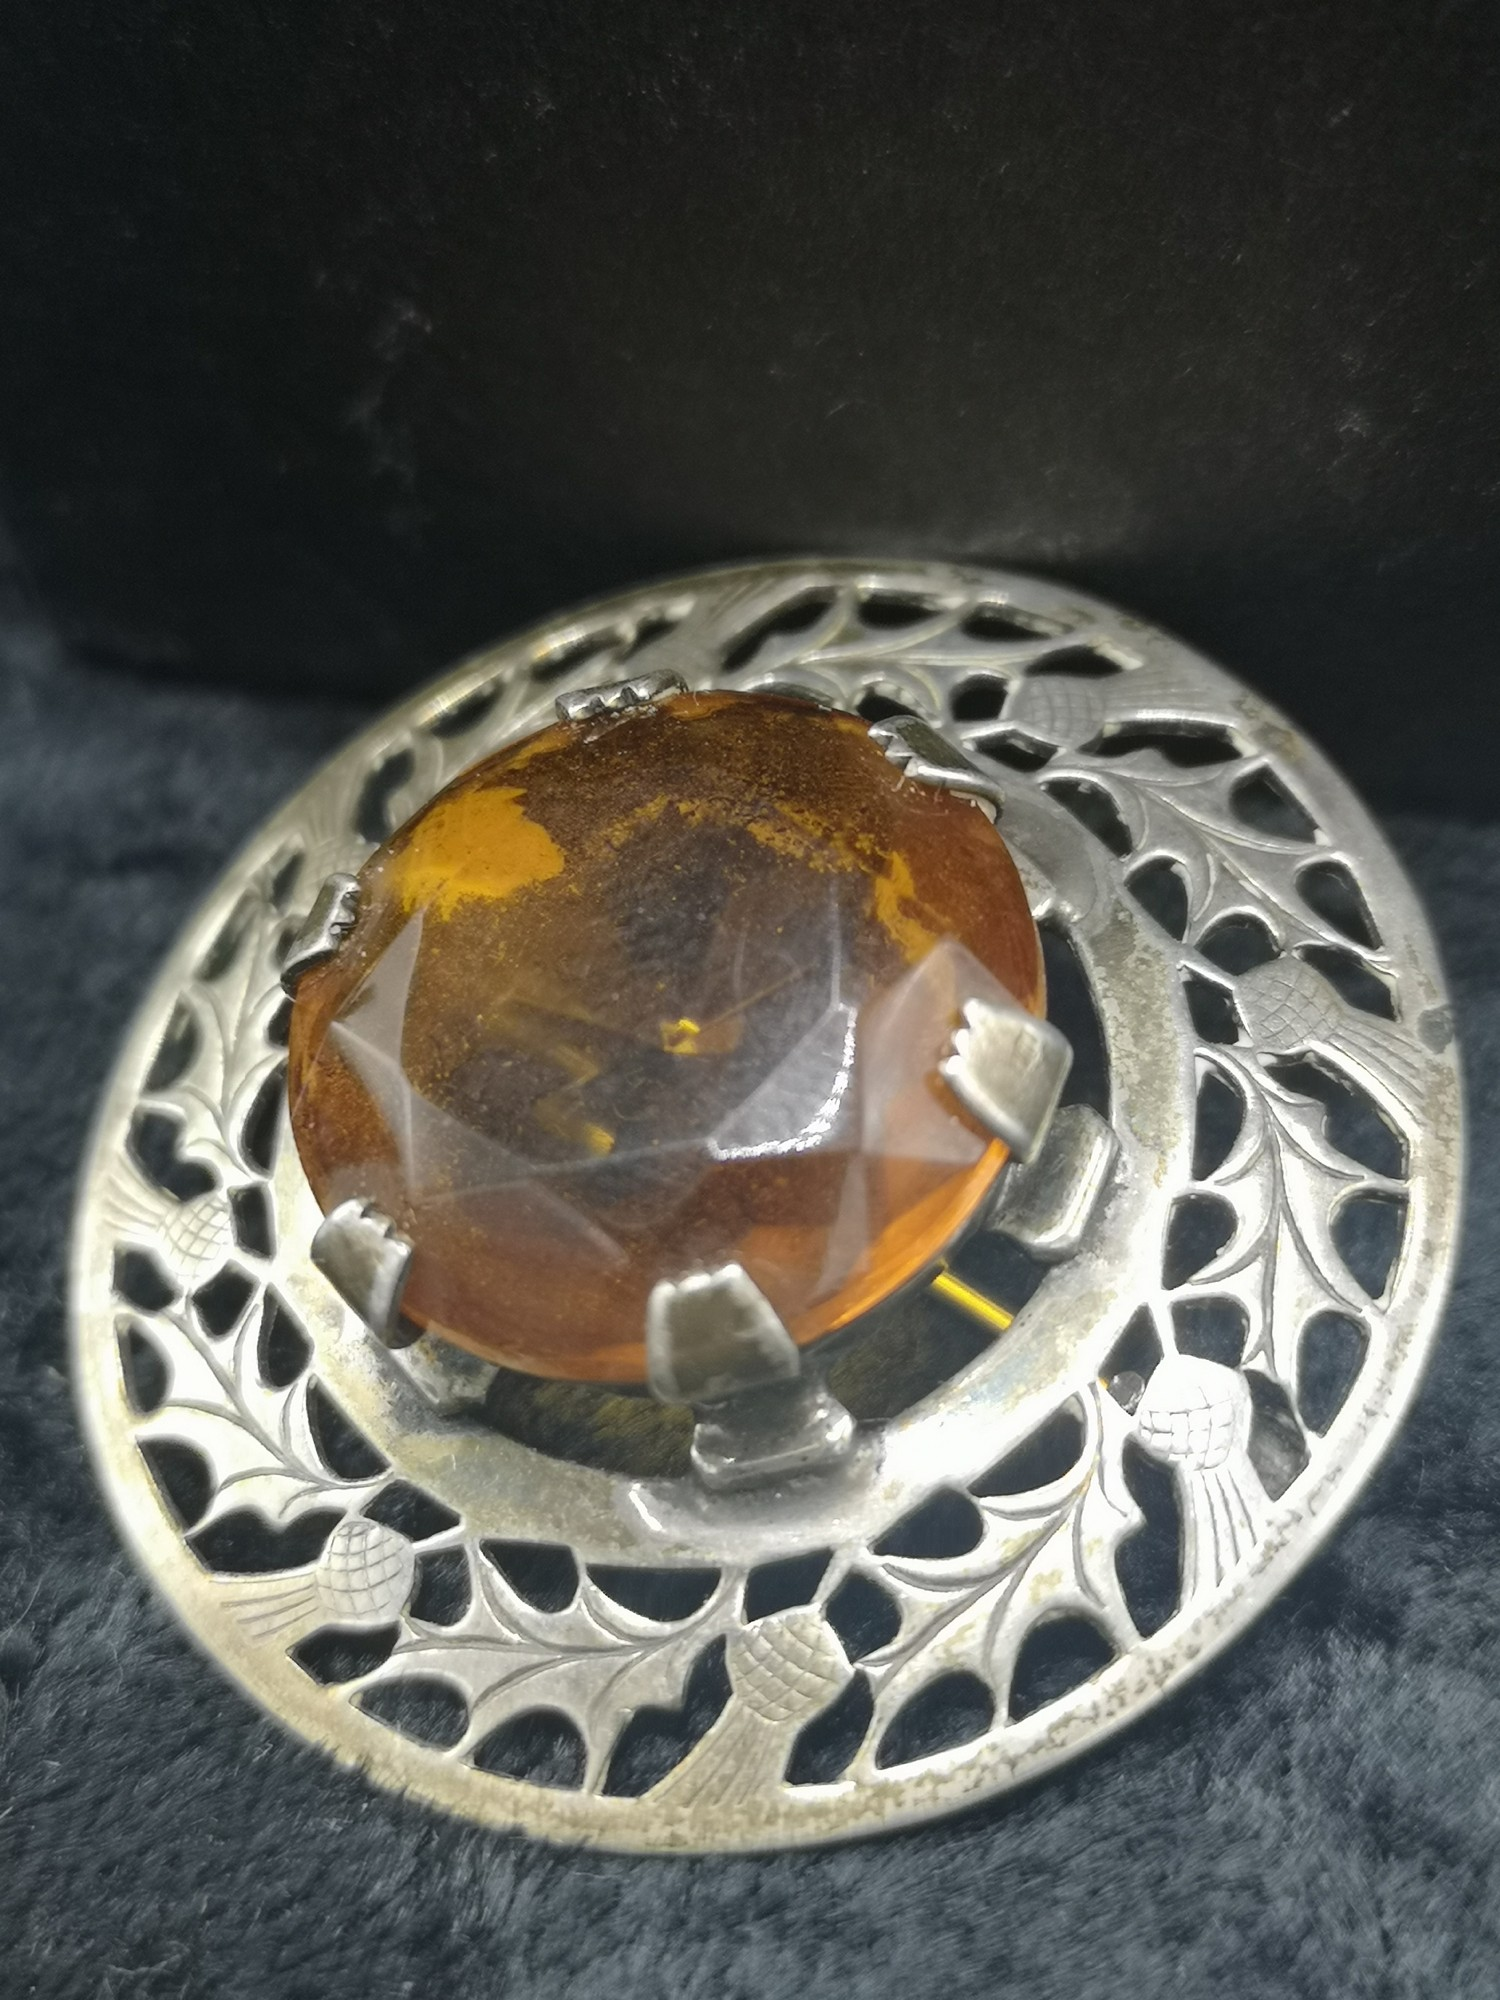 Large Silver Scottish Celtic Plaid Brooch With Large Amber Centre Stone makers wbs.